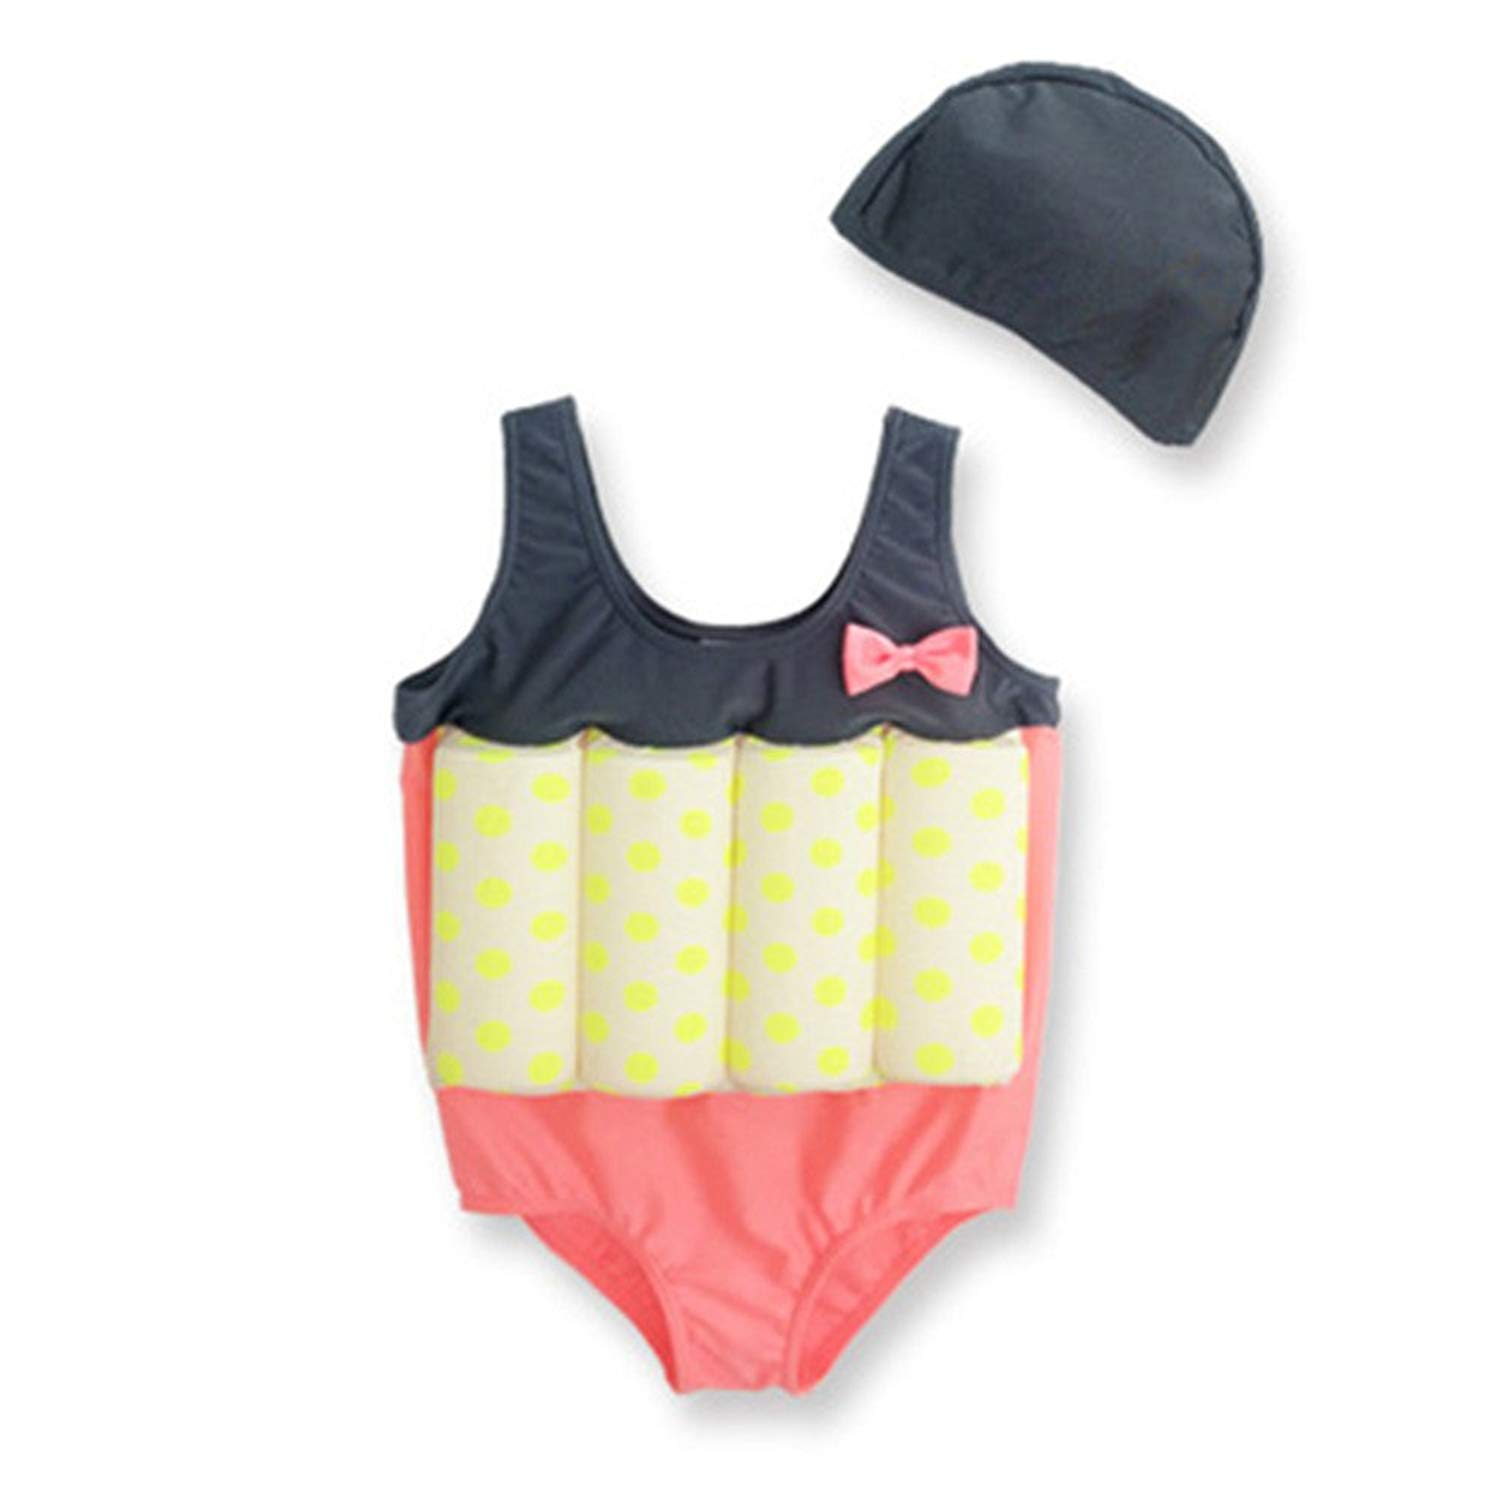 6b807e50b5 Get Quotations · One Piece Swimwear for Baby Kids Detachable Float Swimsuit  Girl Learn to Swim Safely